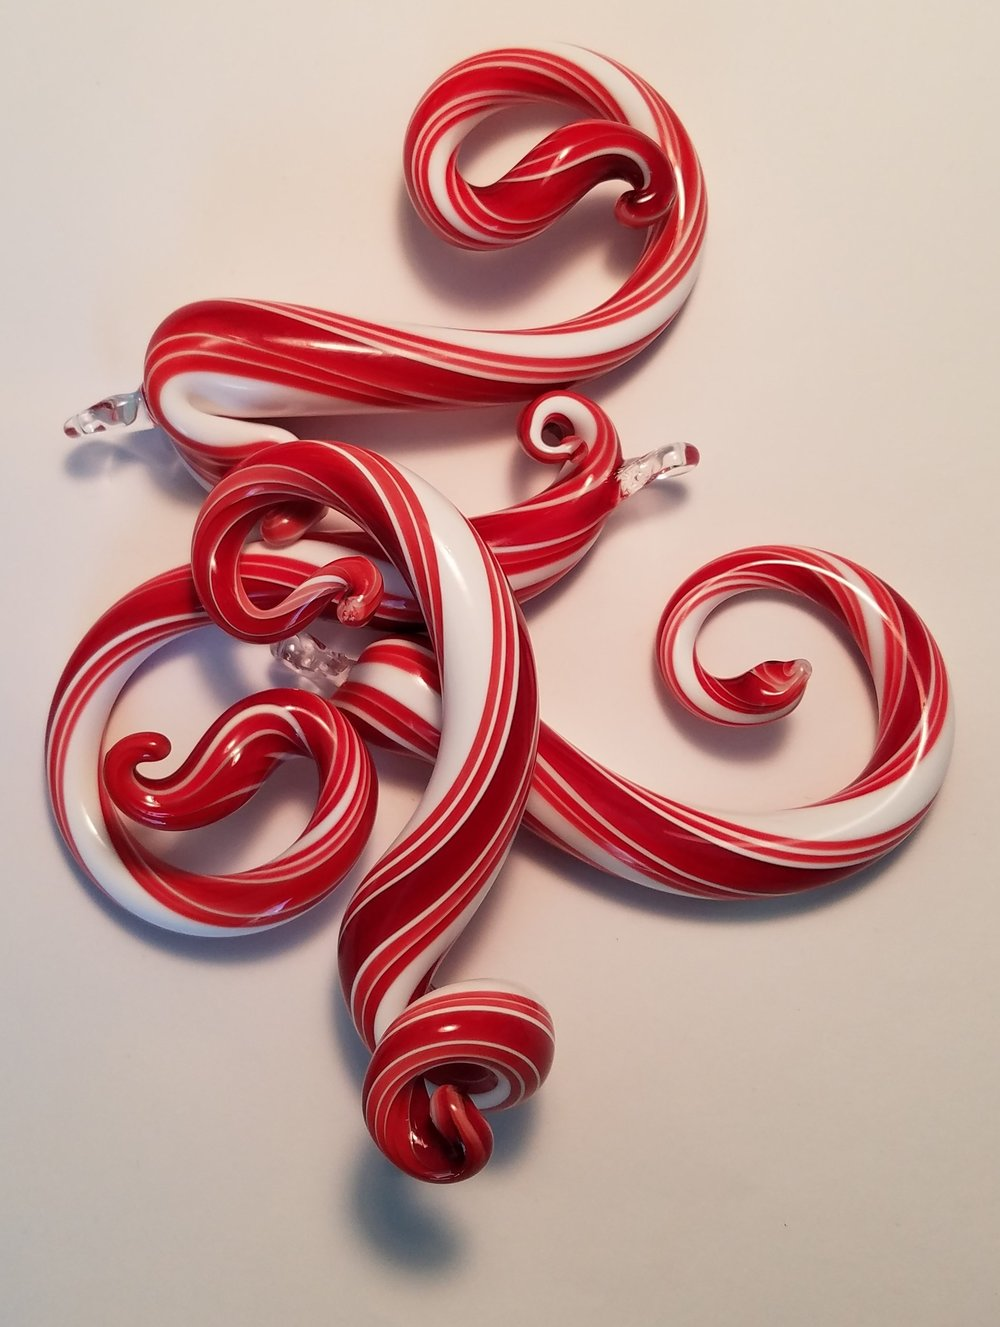 Candy Cane Curls - hollow glass holiday ornaments